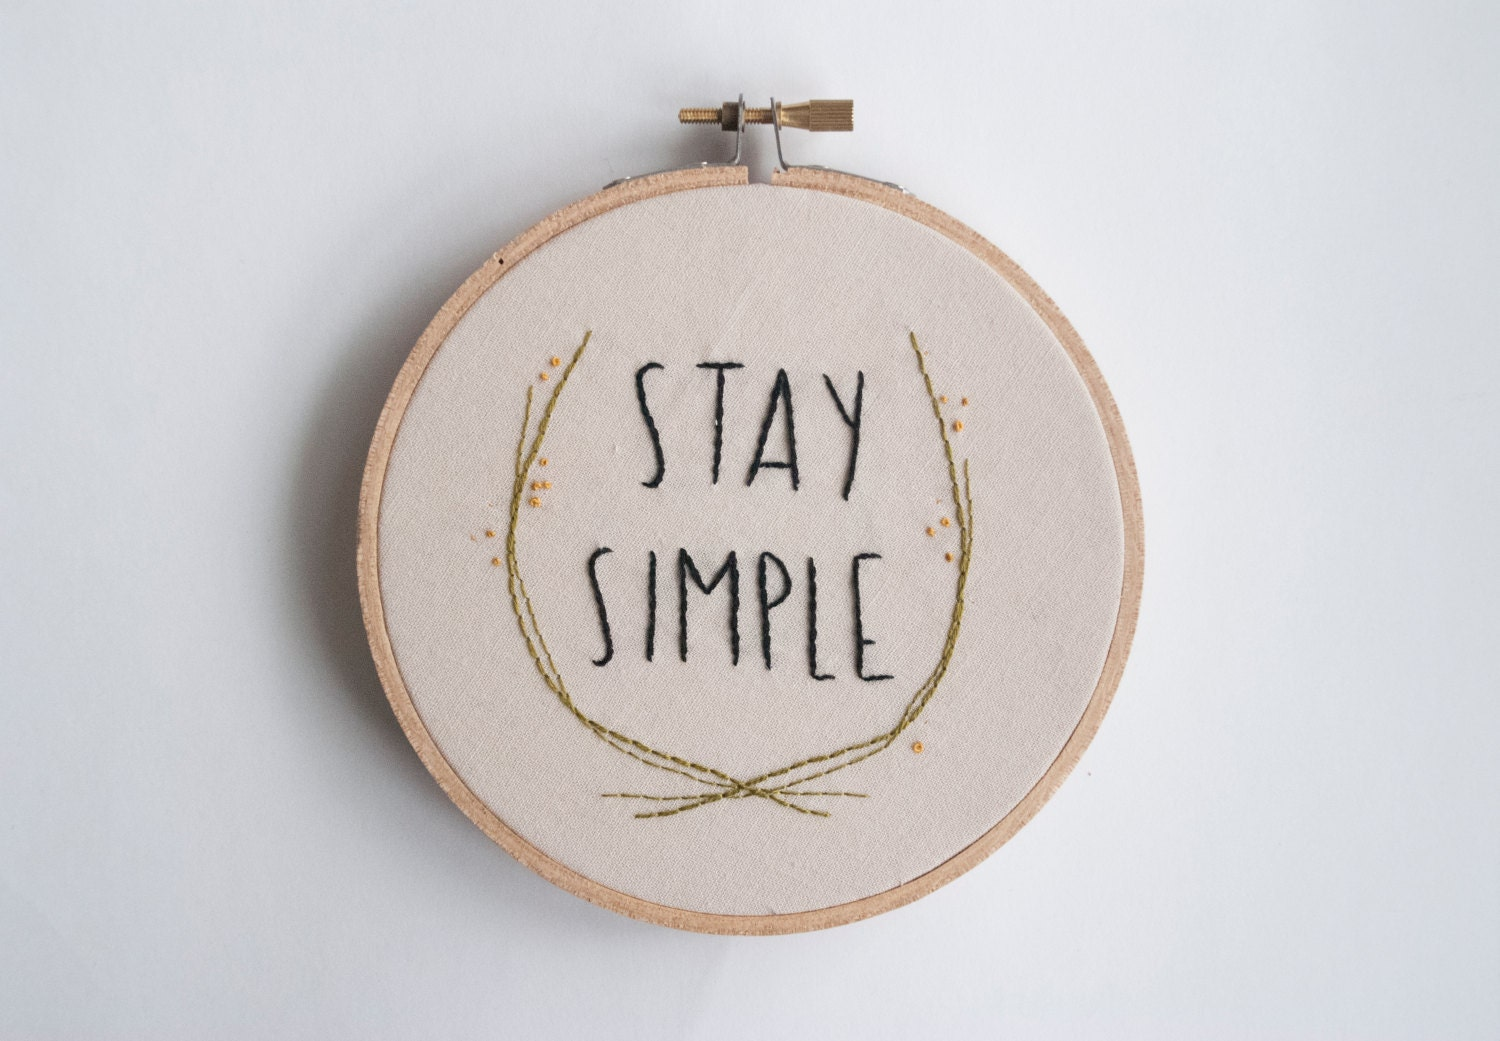 Stay simple hoop art embroidery quote pair